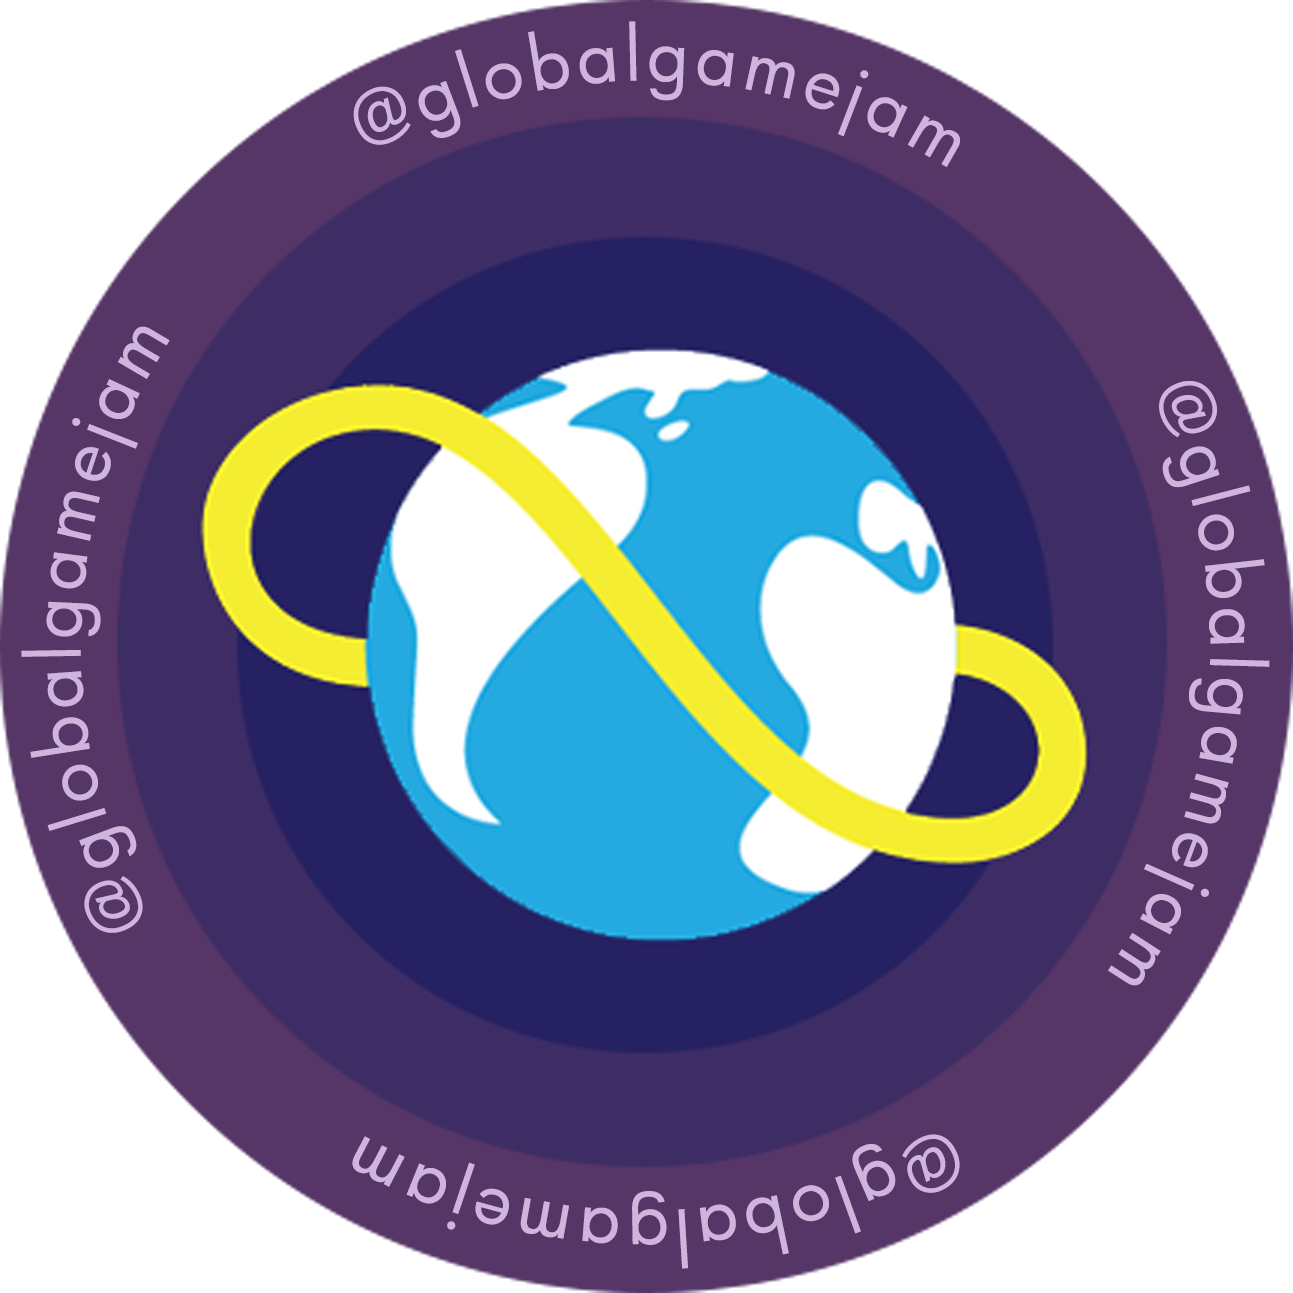 ggj16_round_logo_with_twitter_handle.png - Do Now PNG